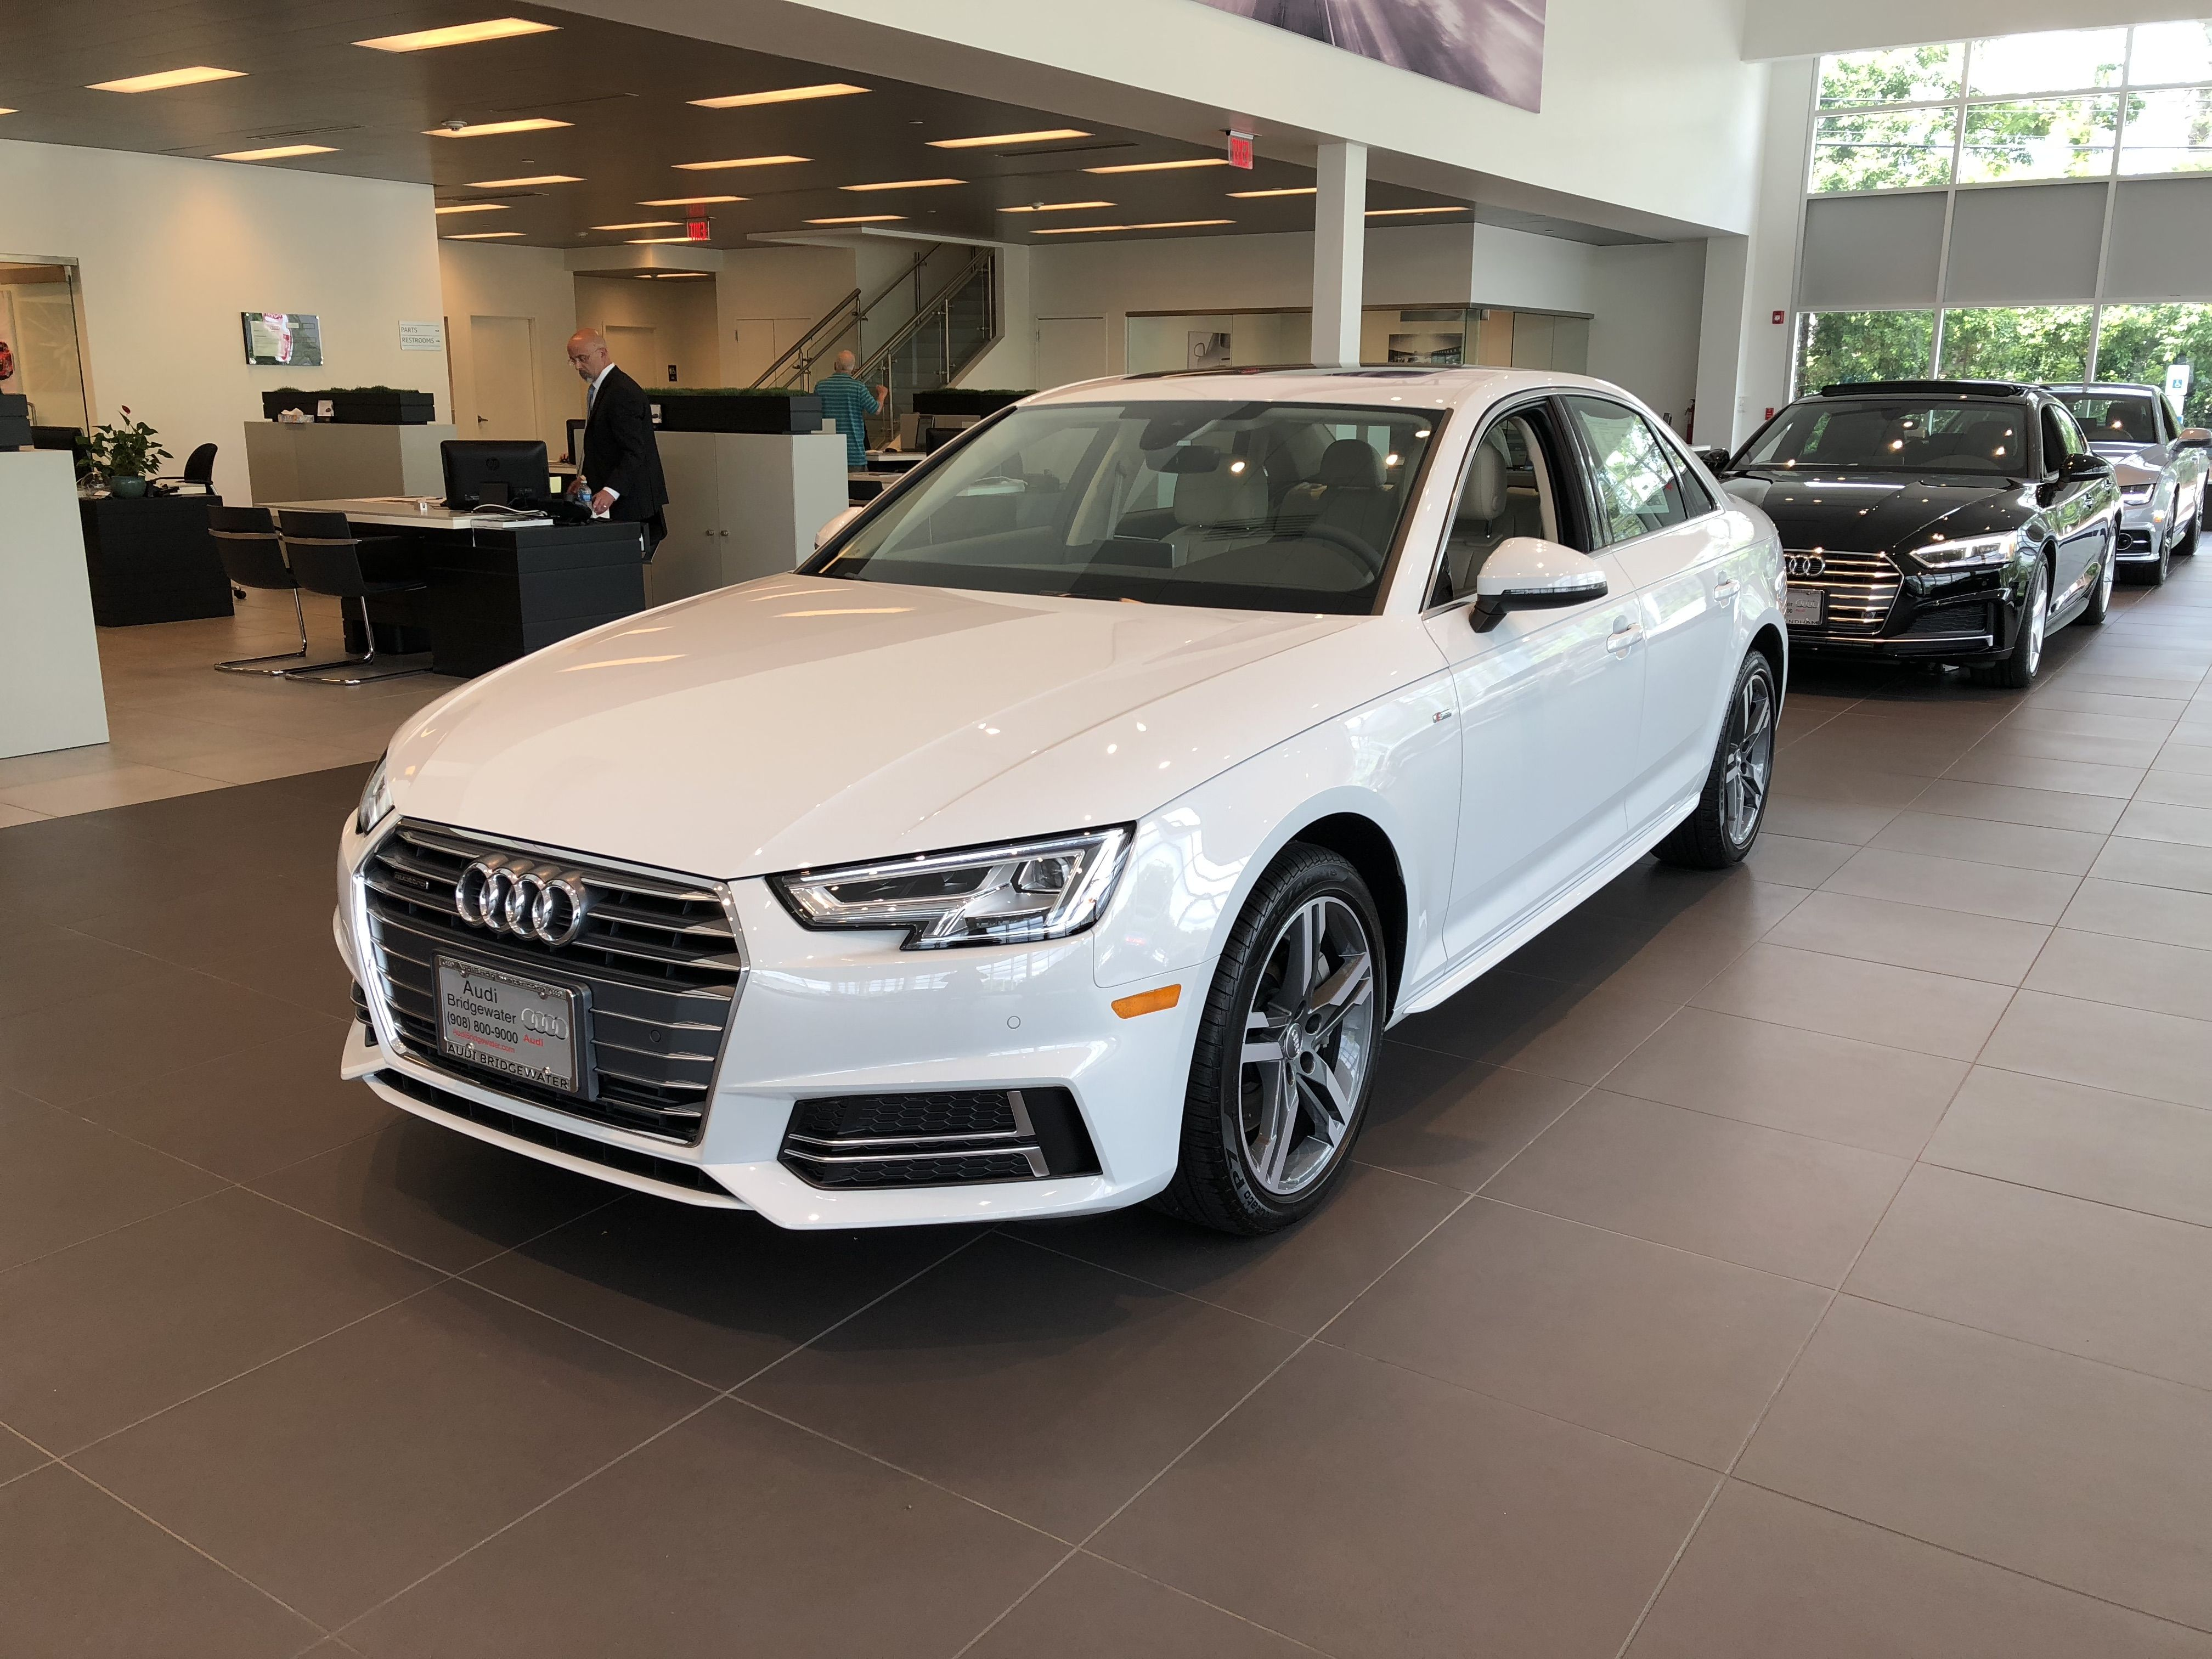 High Angled Side View Of Ibis White Audi A4 Located At Audi Of Bridgewater Nj Audi Dealership Audi Used Luxury Cars